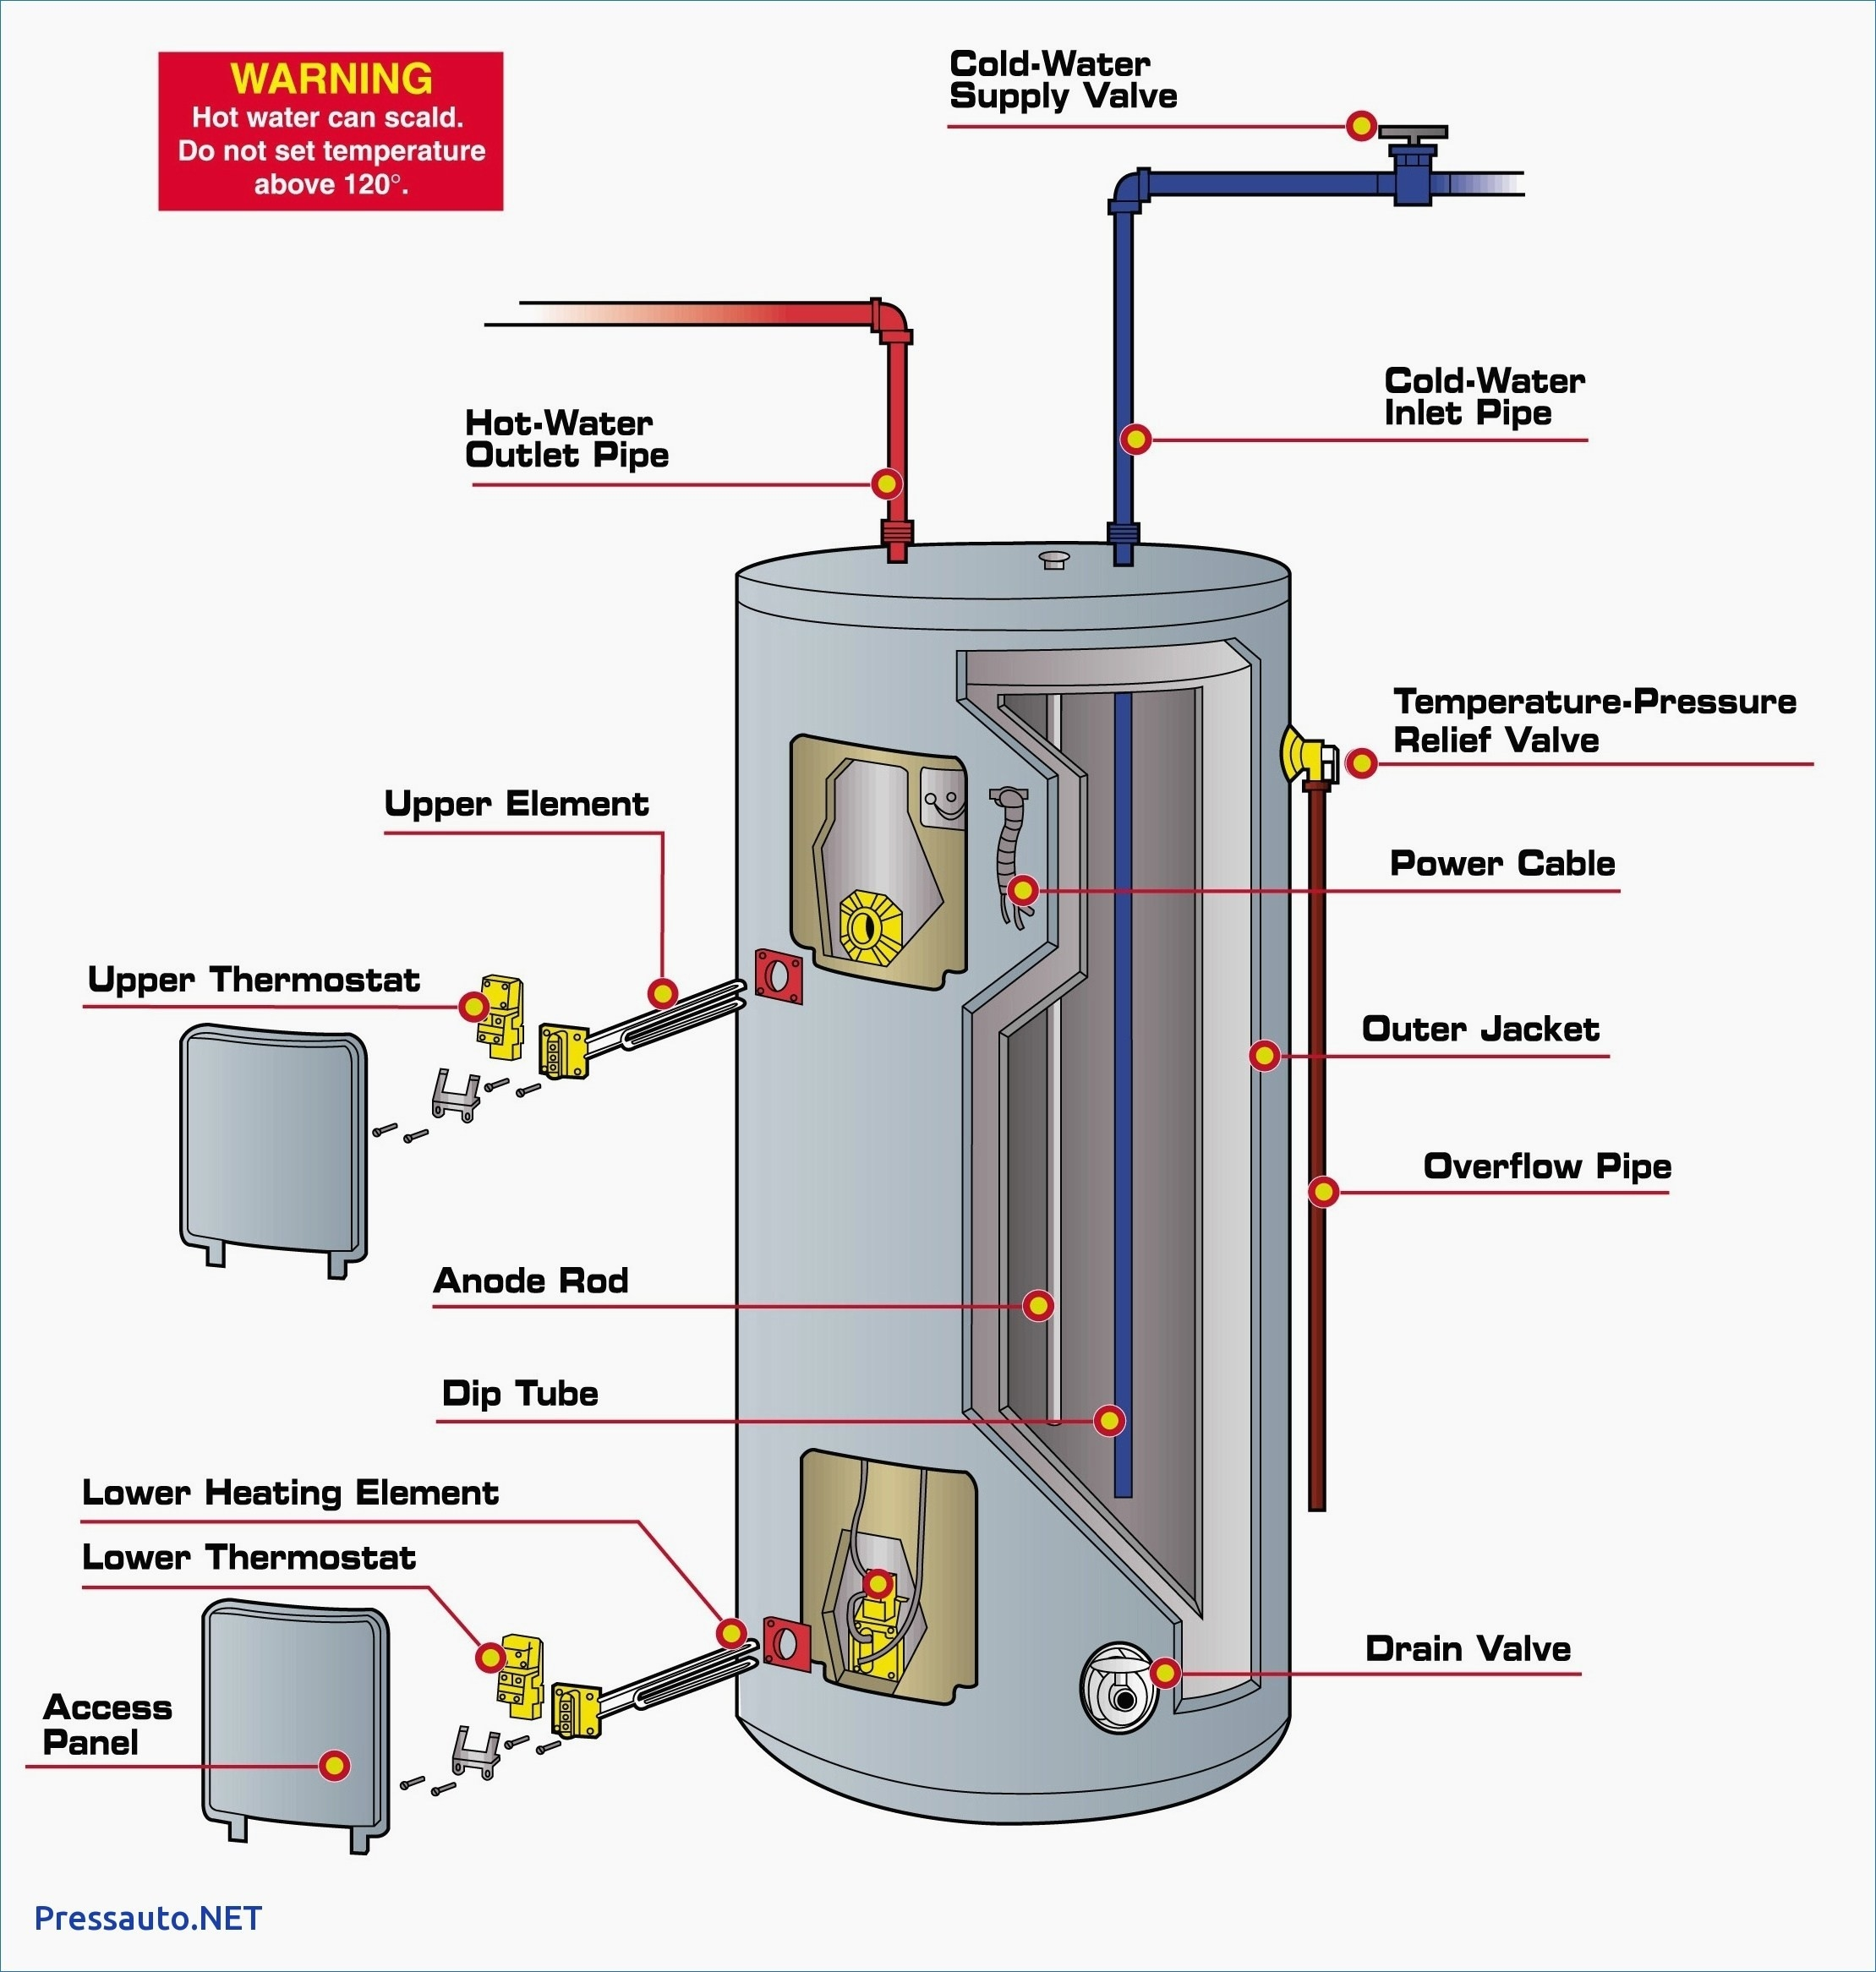 rheem electric water heater wiring diagram Collection-Wiring Diagram Electric Water Heater Fresh New Hot Water Heater Wiring Diagram Diagram 16-o